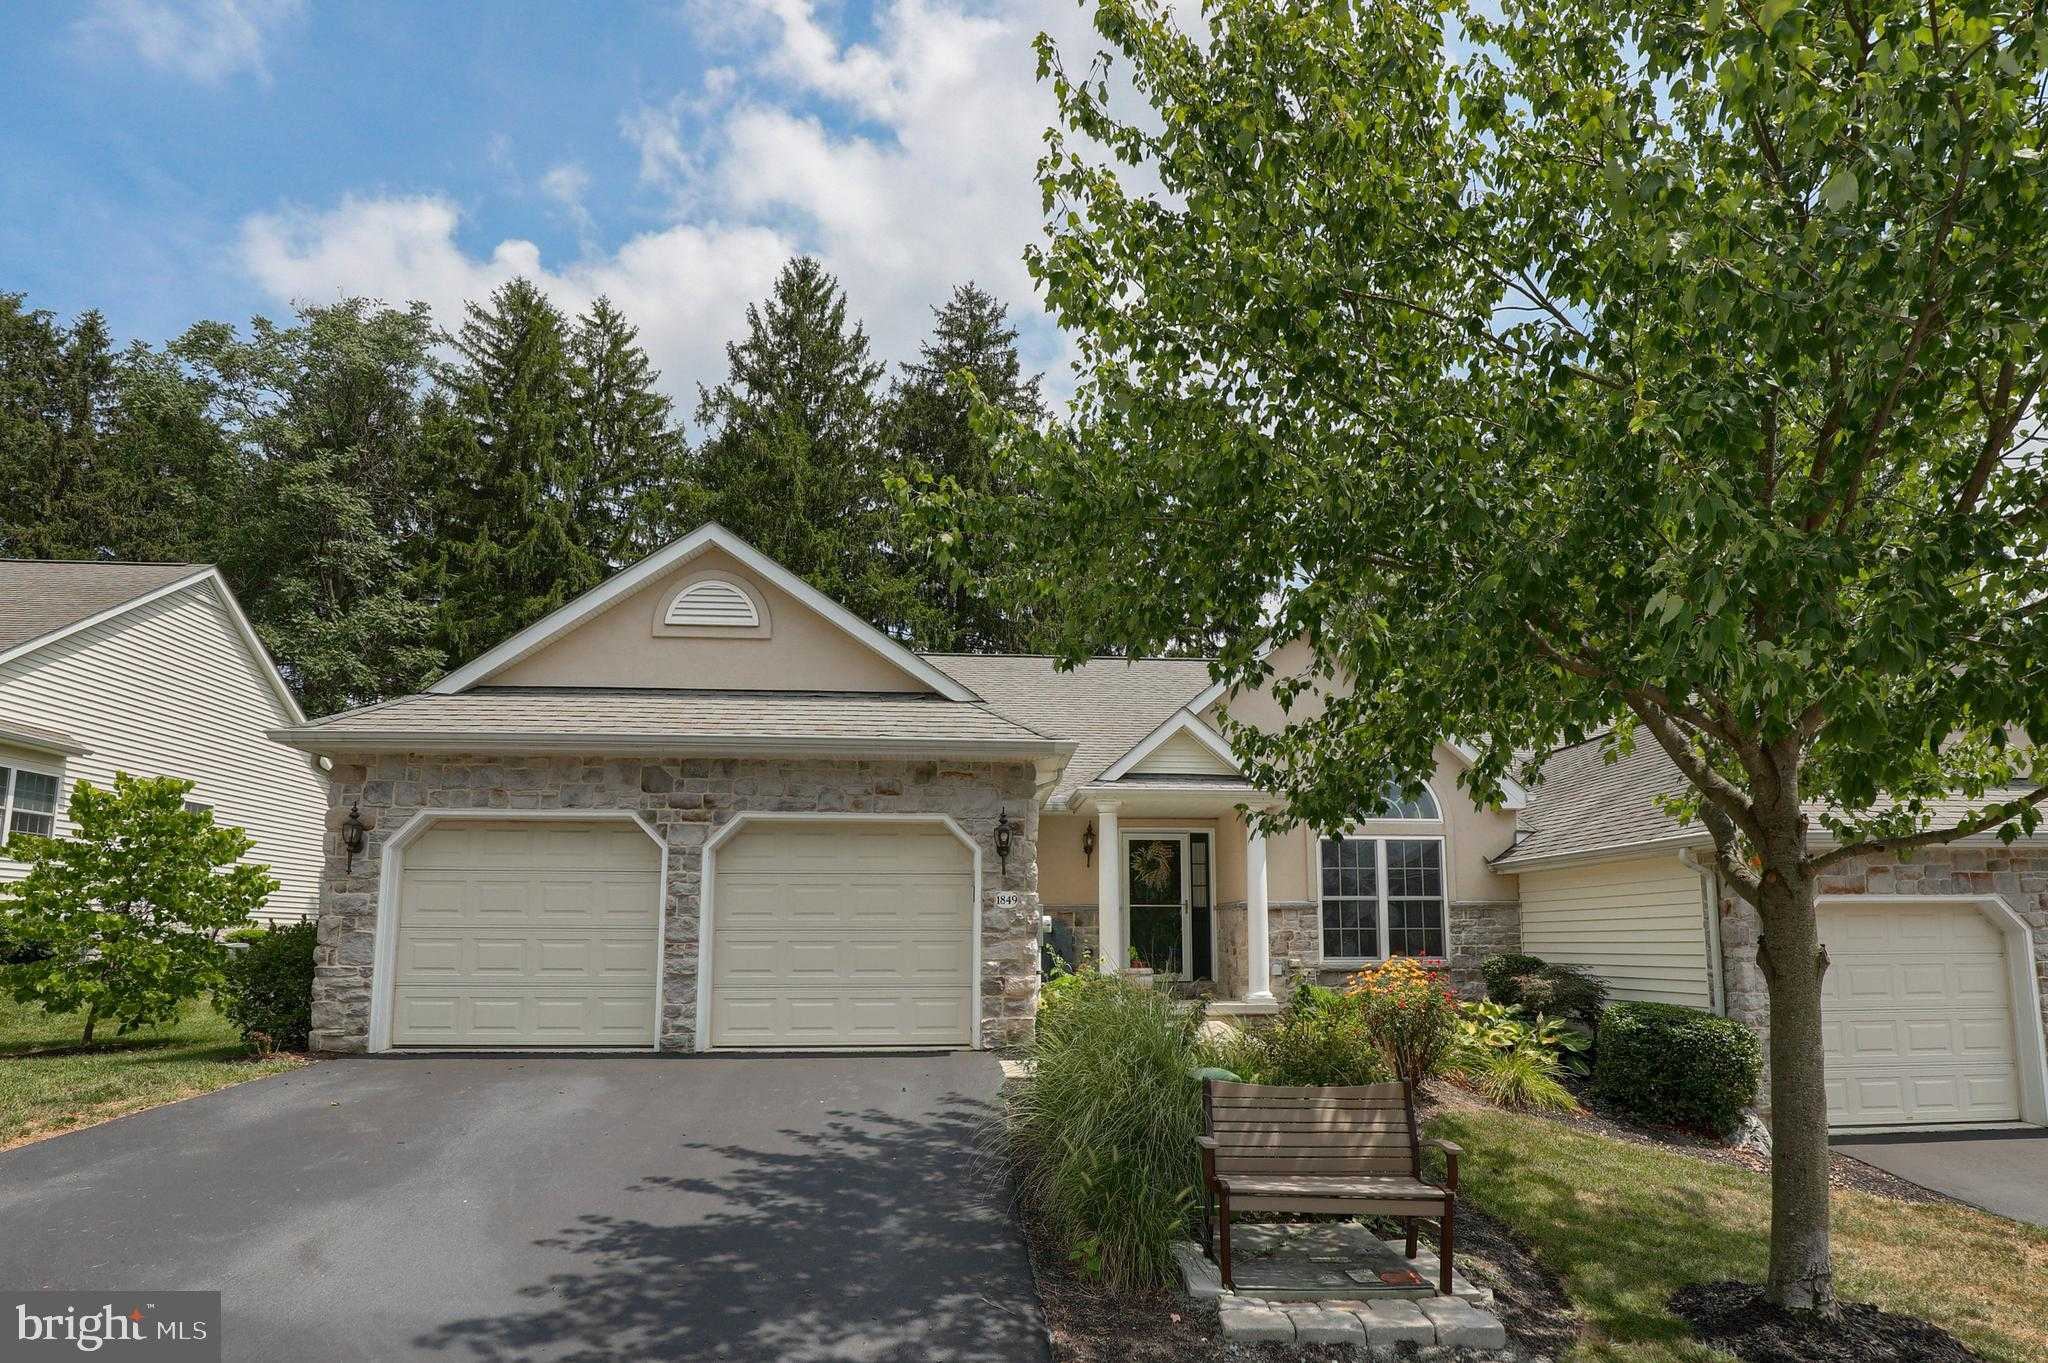 Homes for Sale in Conestoga Valley - Shirley Rust Team